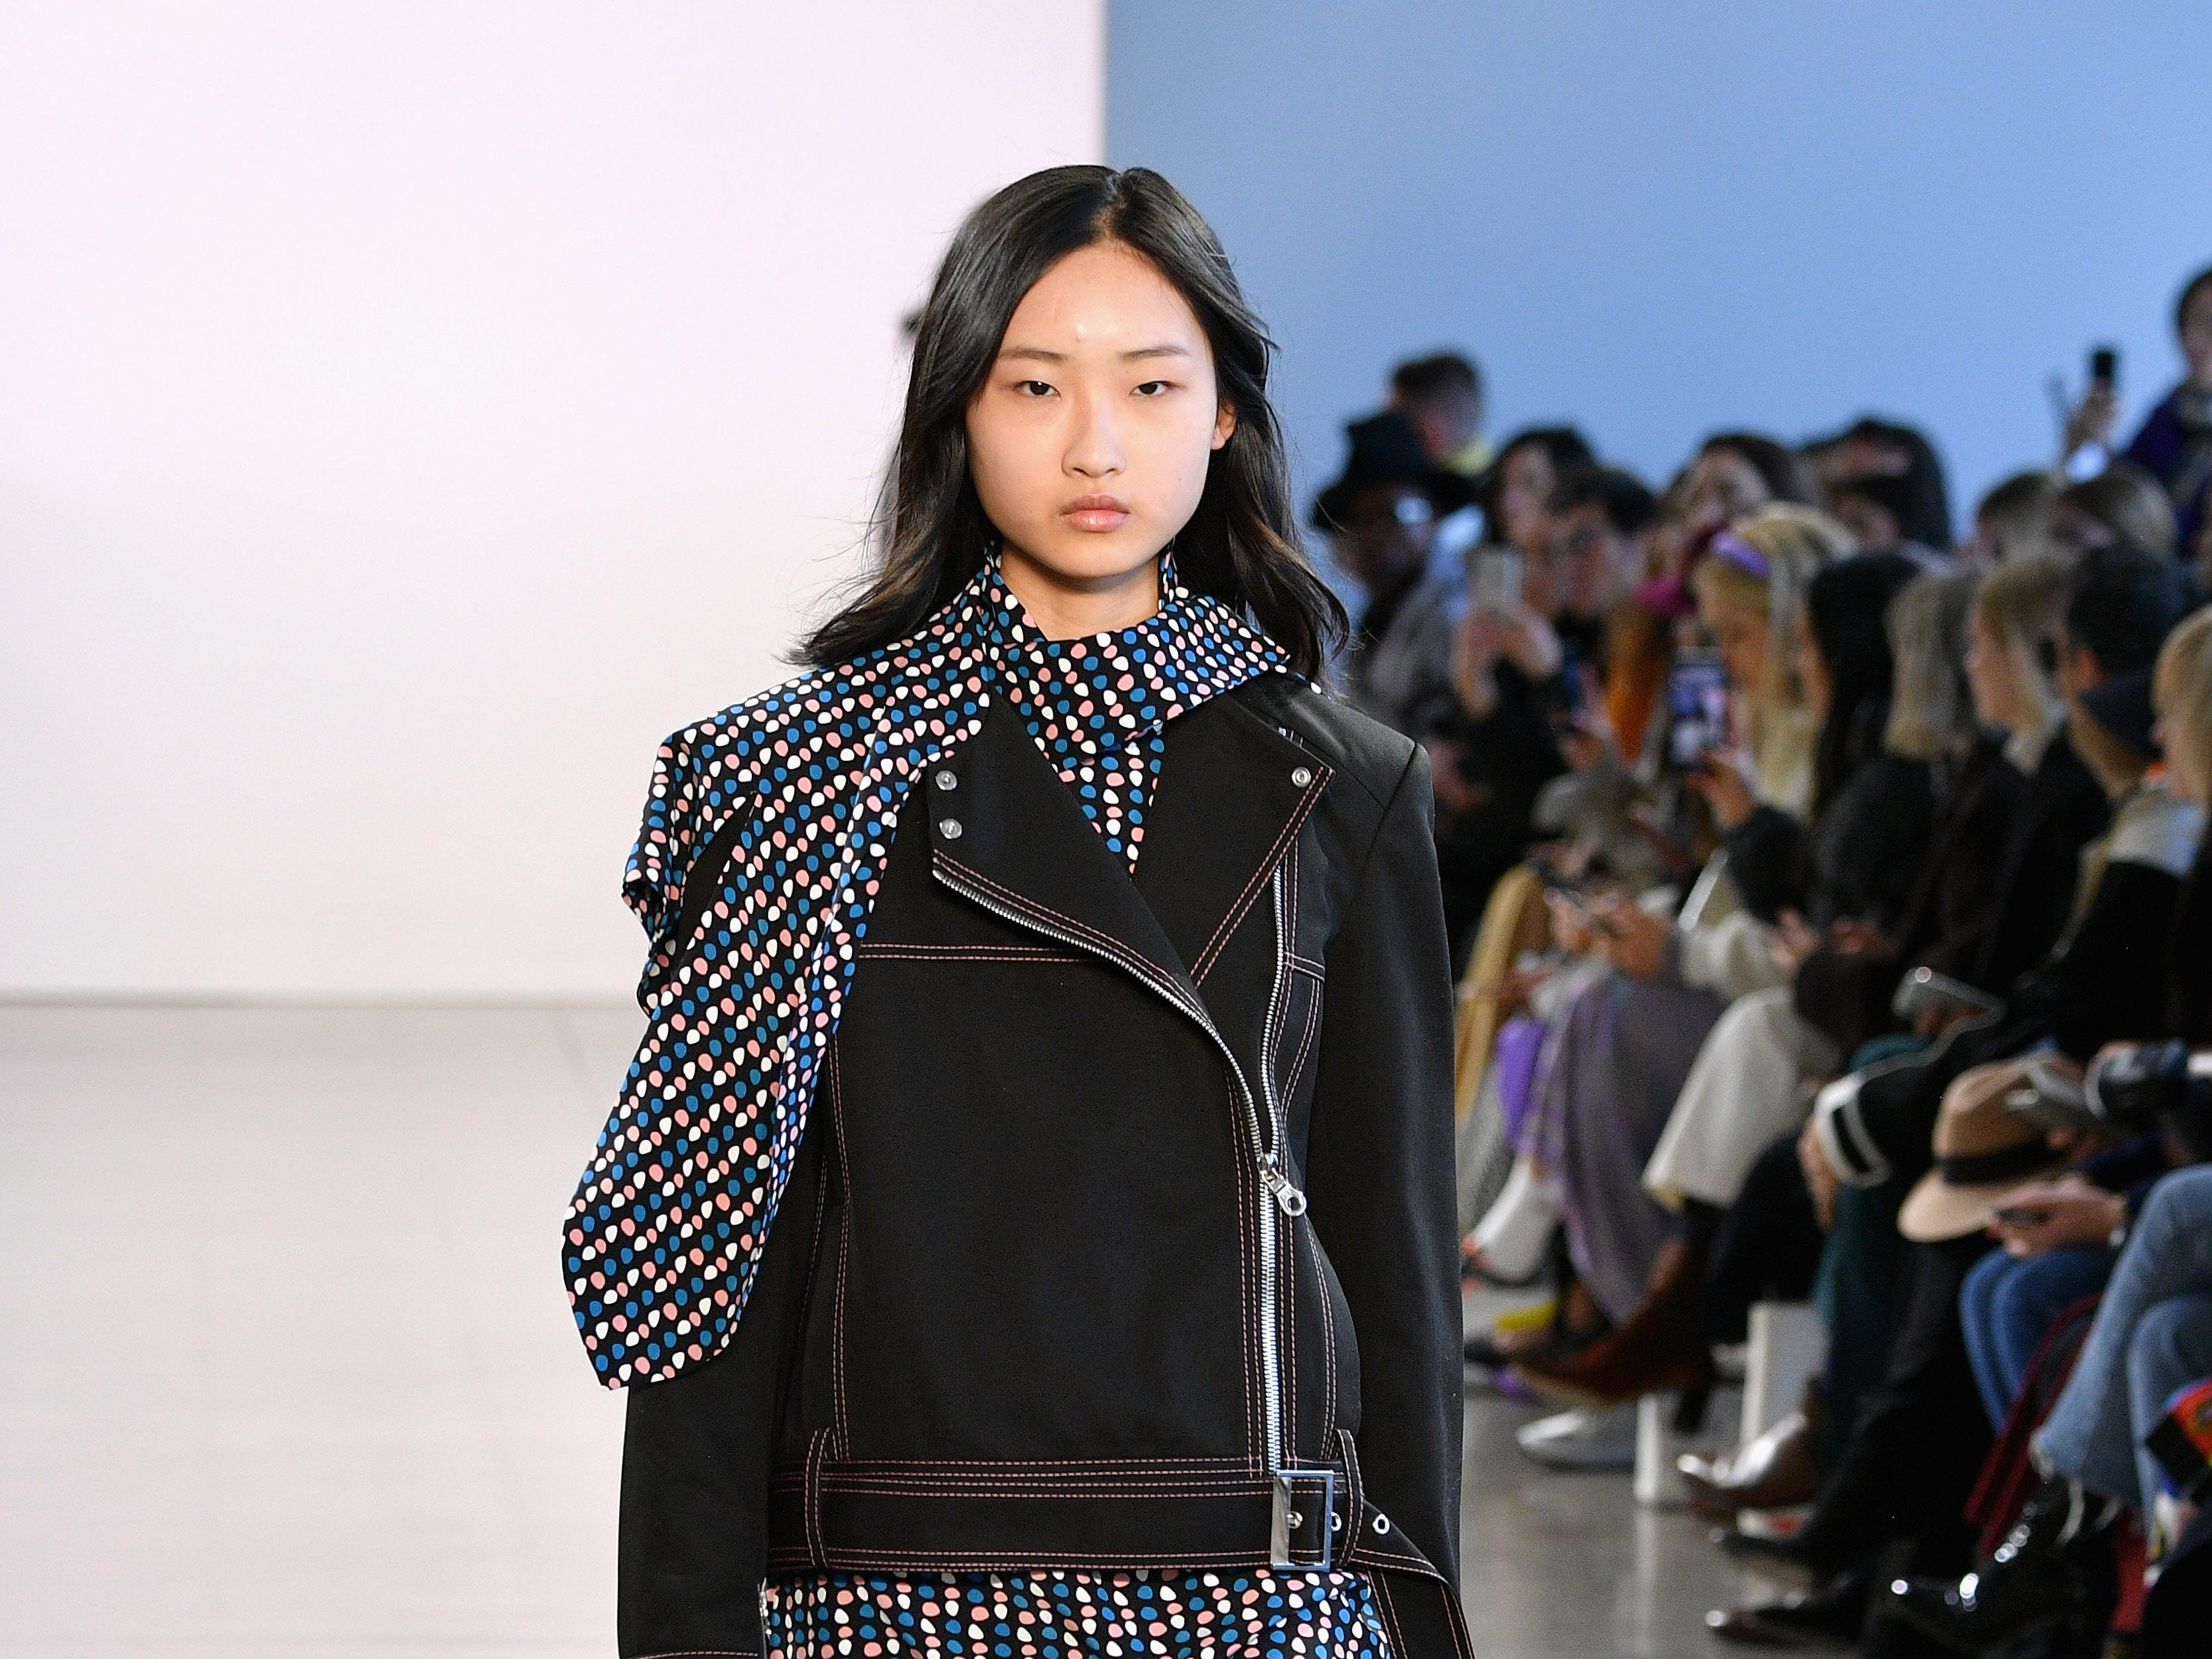 NEW YORK, NY - FEBRUARY 10:  A model walks the runway for the Claudia Li fashion show during New York Fashion Week: The Shows at Gallery II at Spring Studios on February 10, 2019 in New York City.  (Photo by Dia Dipasupil/Getty Images for NYFW: The Shows) ORG XMIT: 775290850 ORIG FILE ID: 1097104788